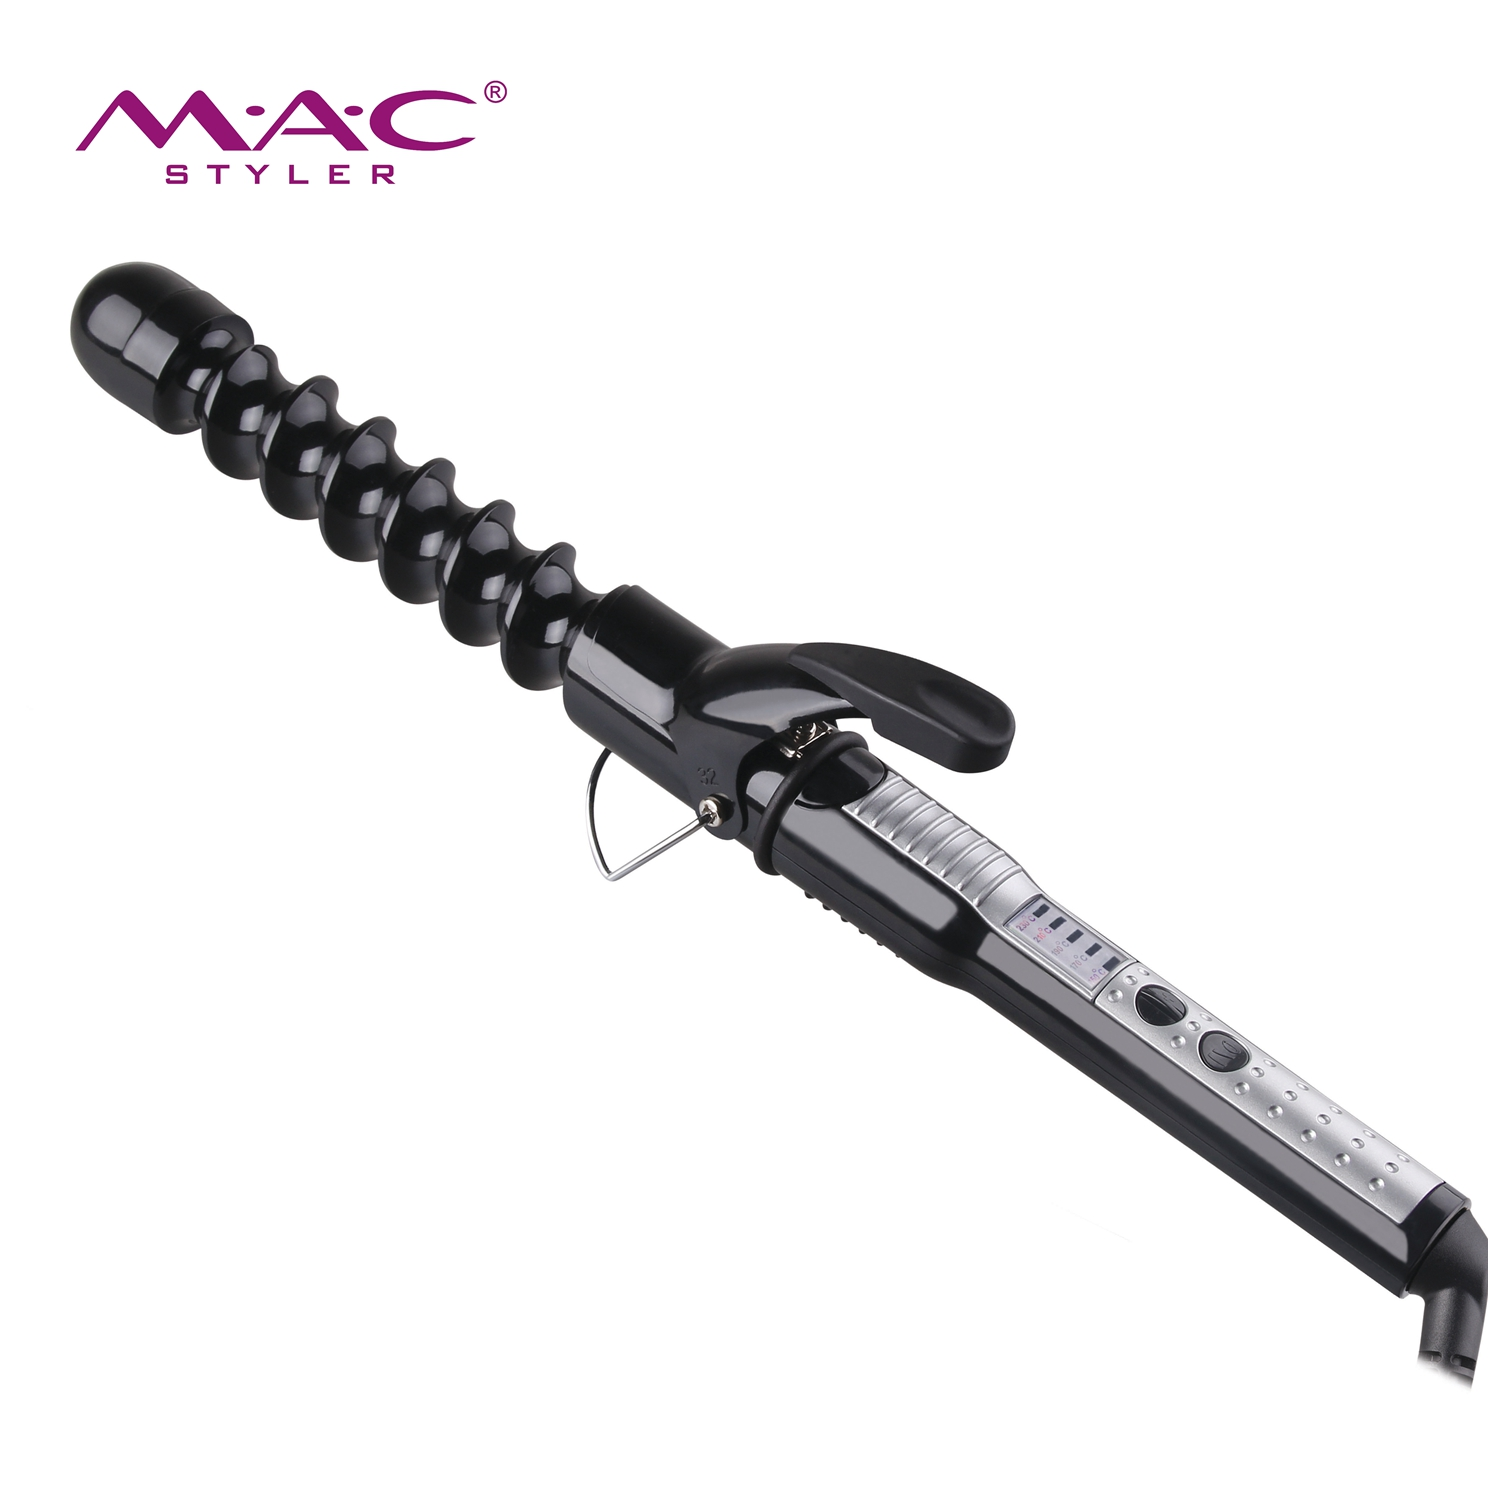 Hair Styling Tools Curling Iron With PTC Heater Adjustable Temperature Salon Barbers Affordable Hair Curler